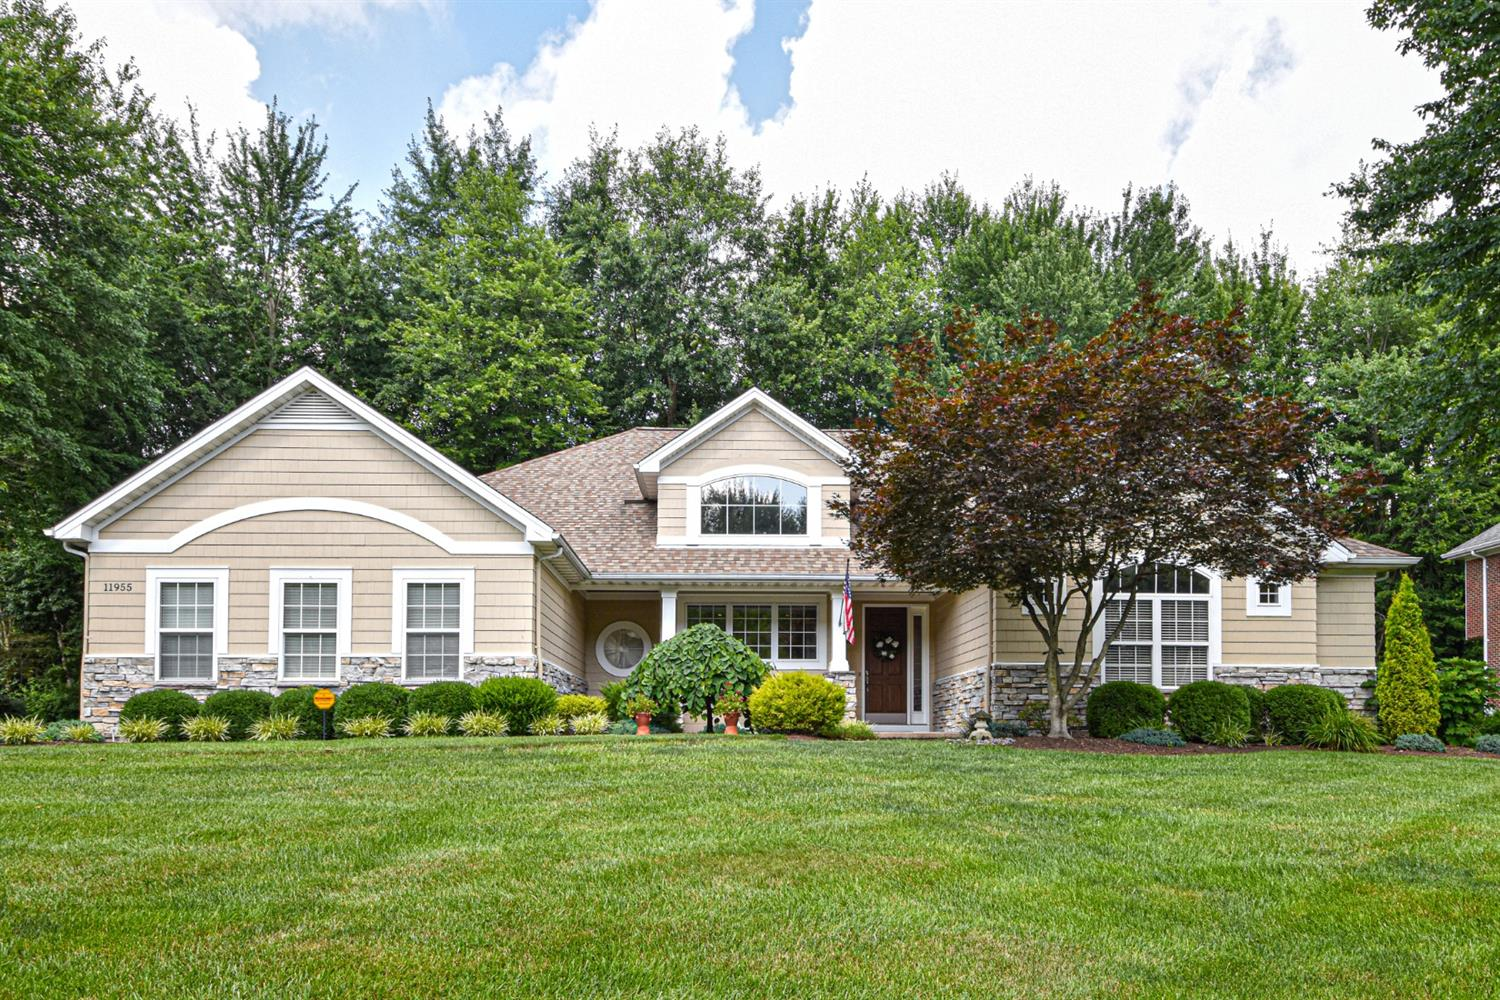 11955 Millstone Ct Symmes Twp., OH